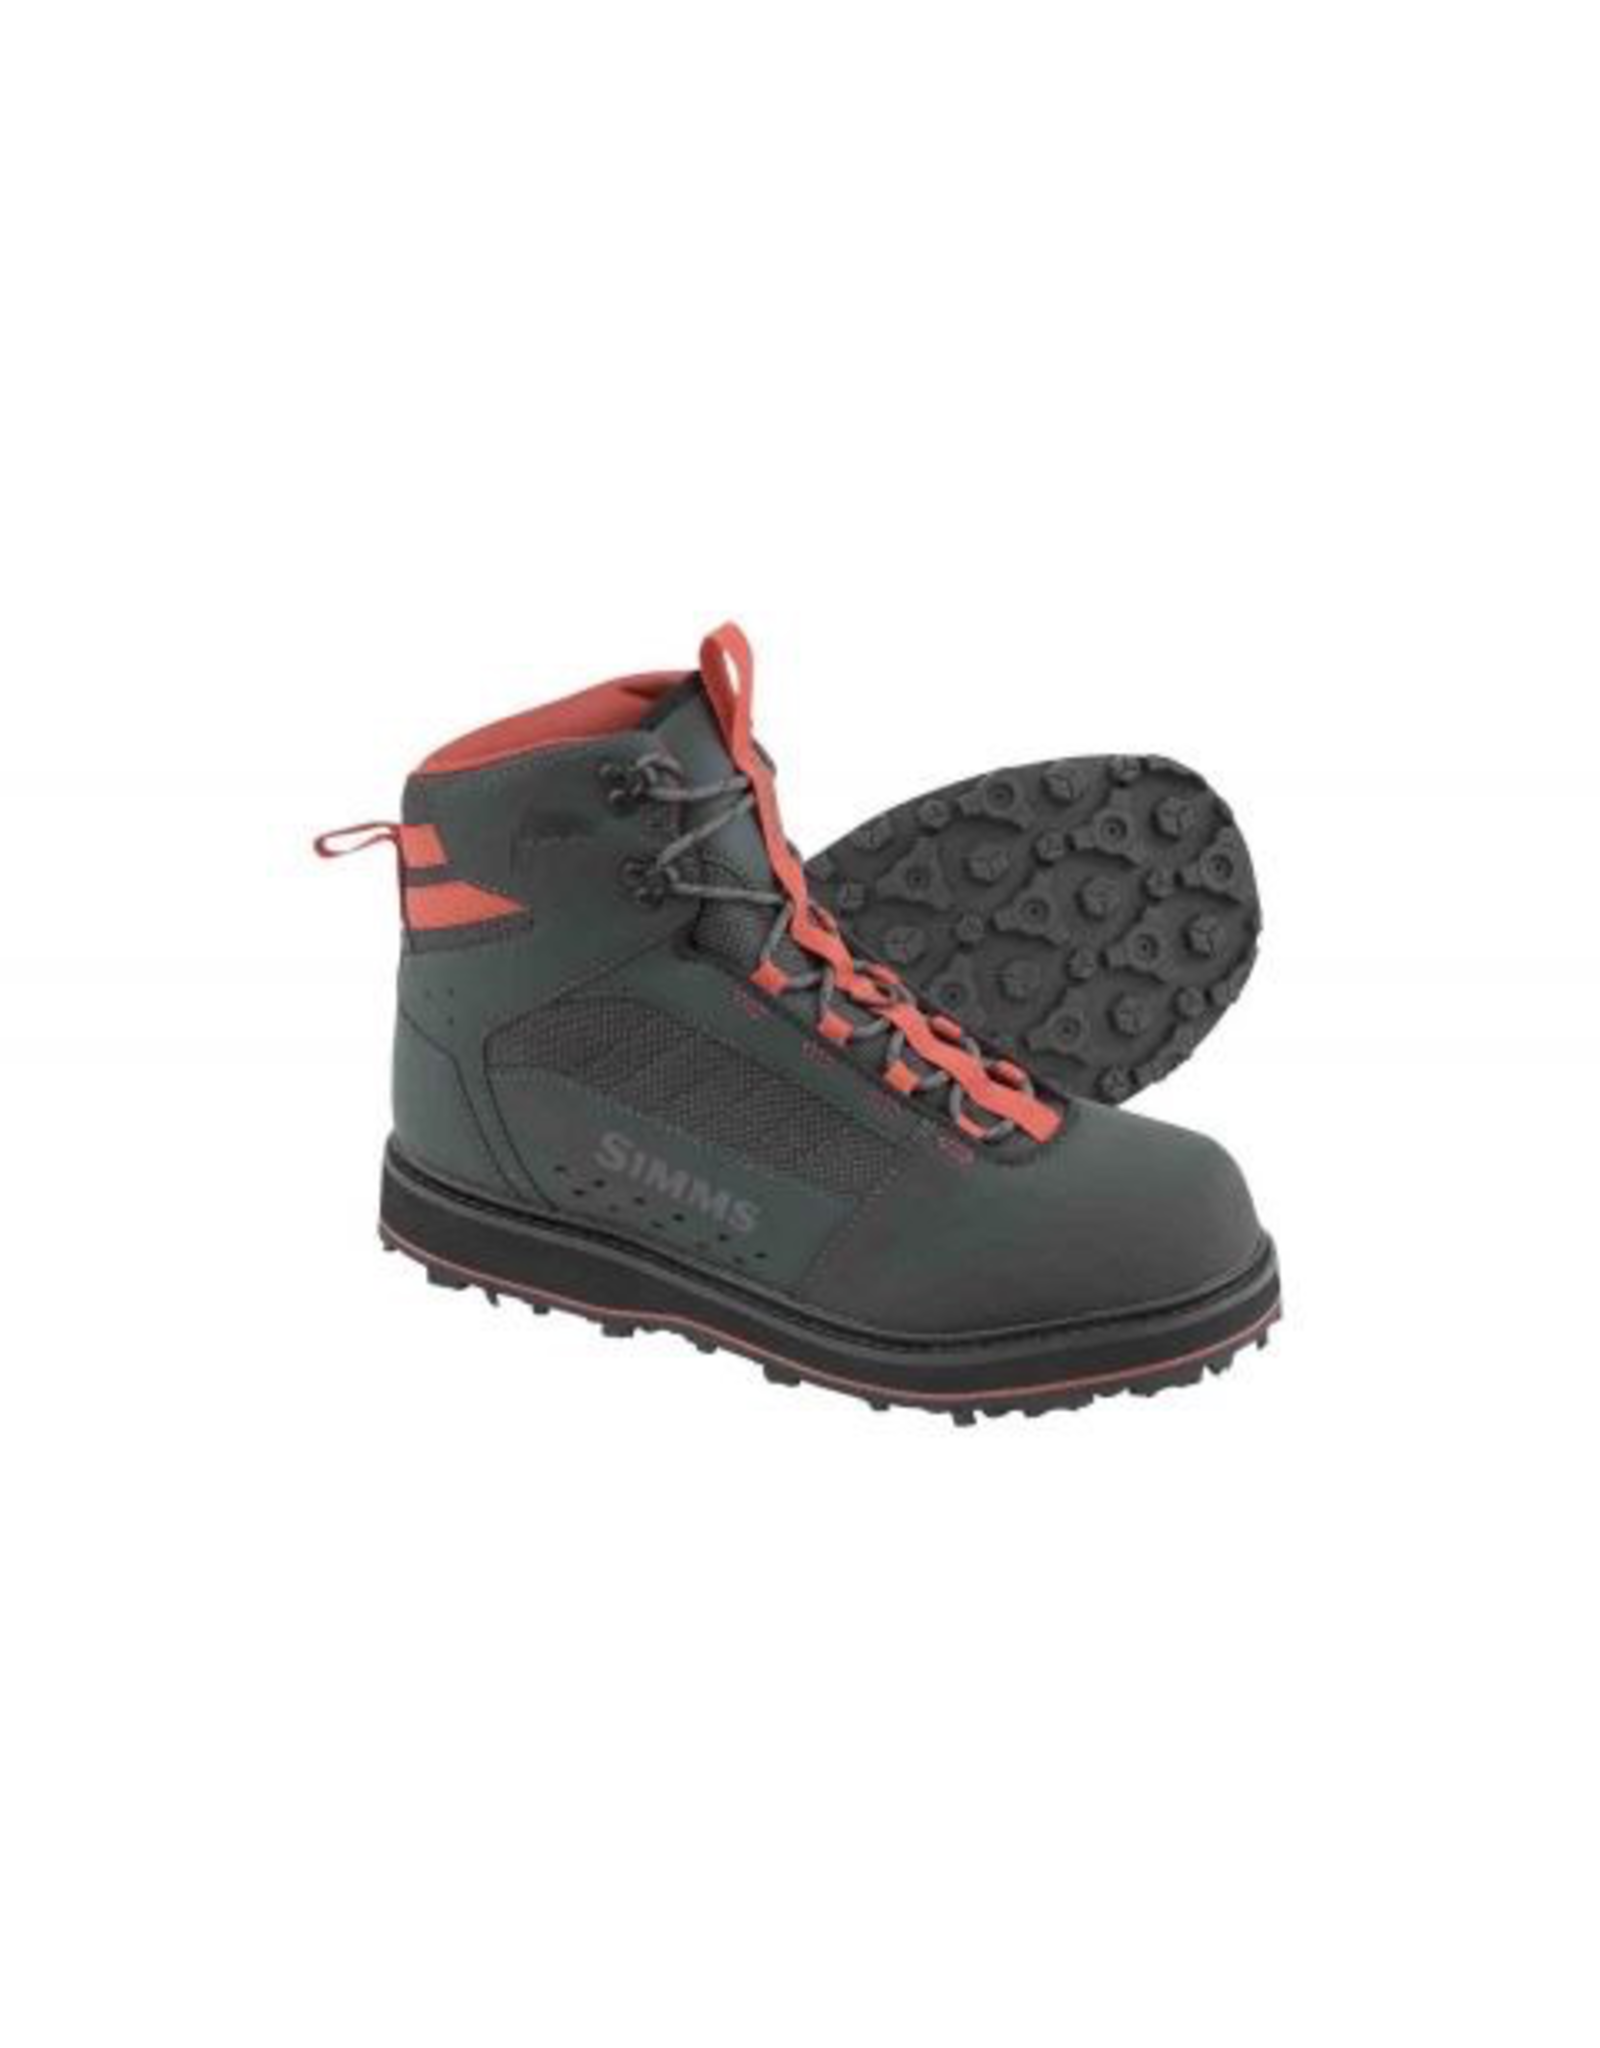 Simms Tributary Wading Boot..Rubber Sole   Carbon